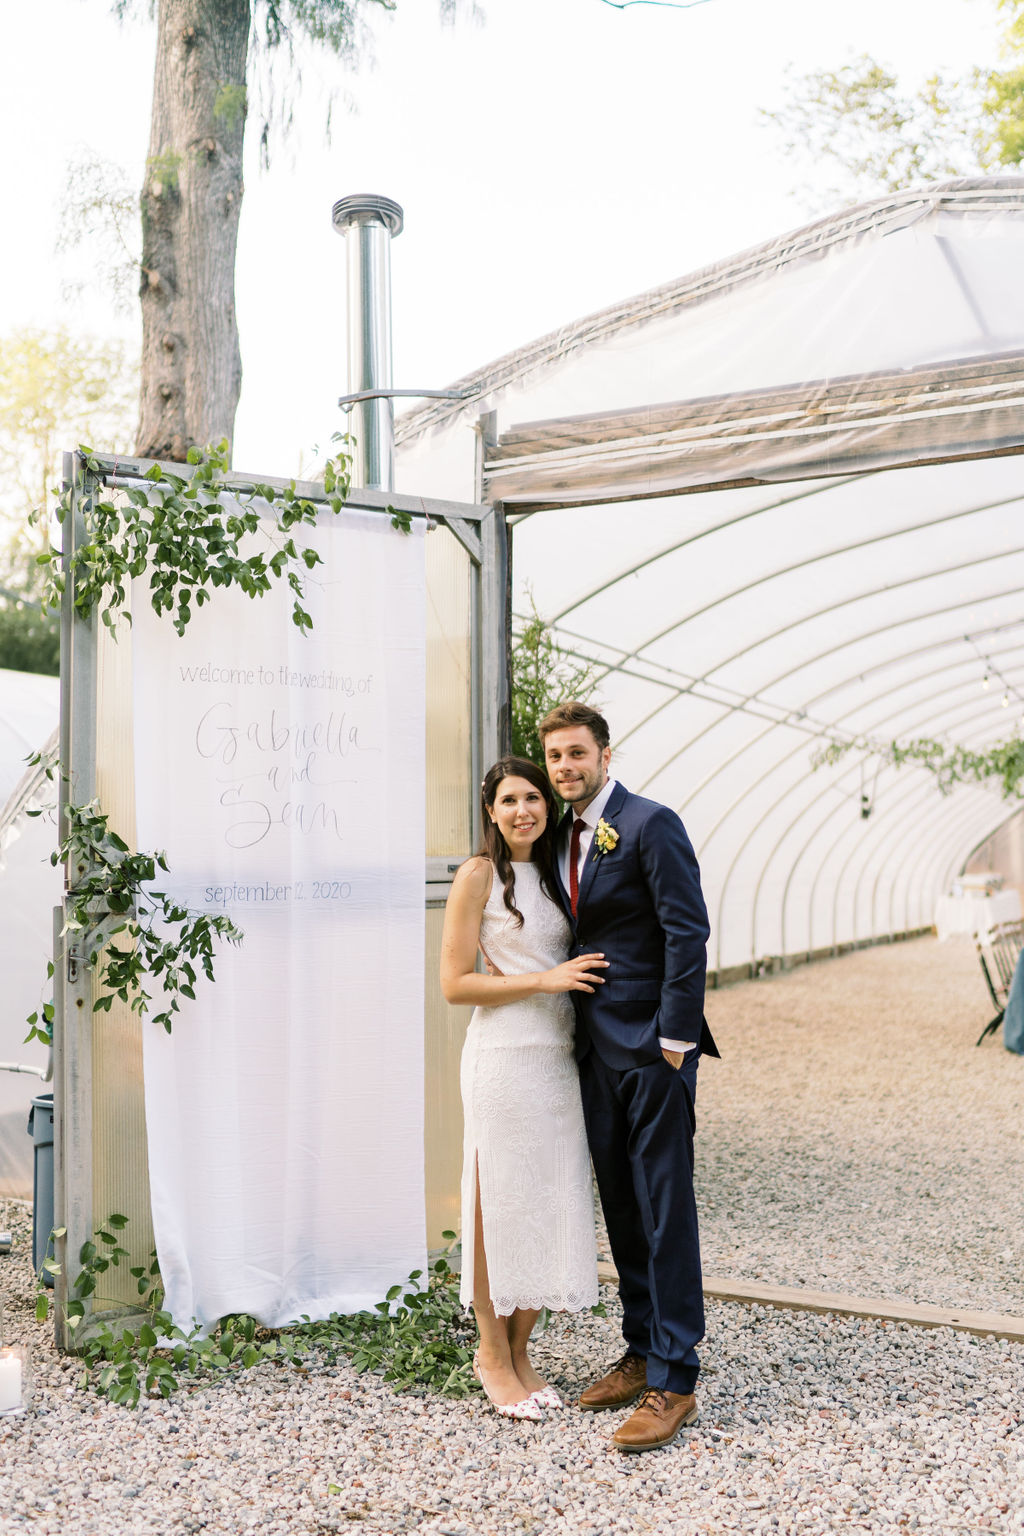 bride and groom standing outside next to wedding sign